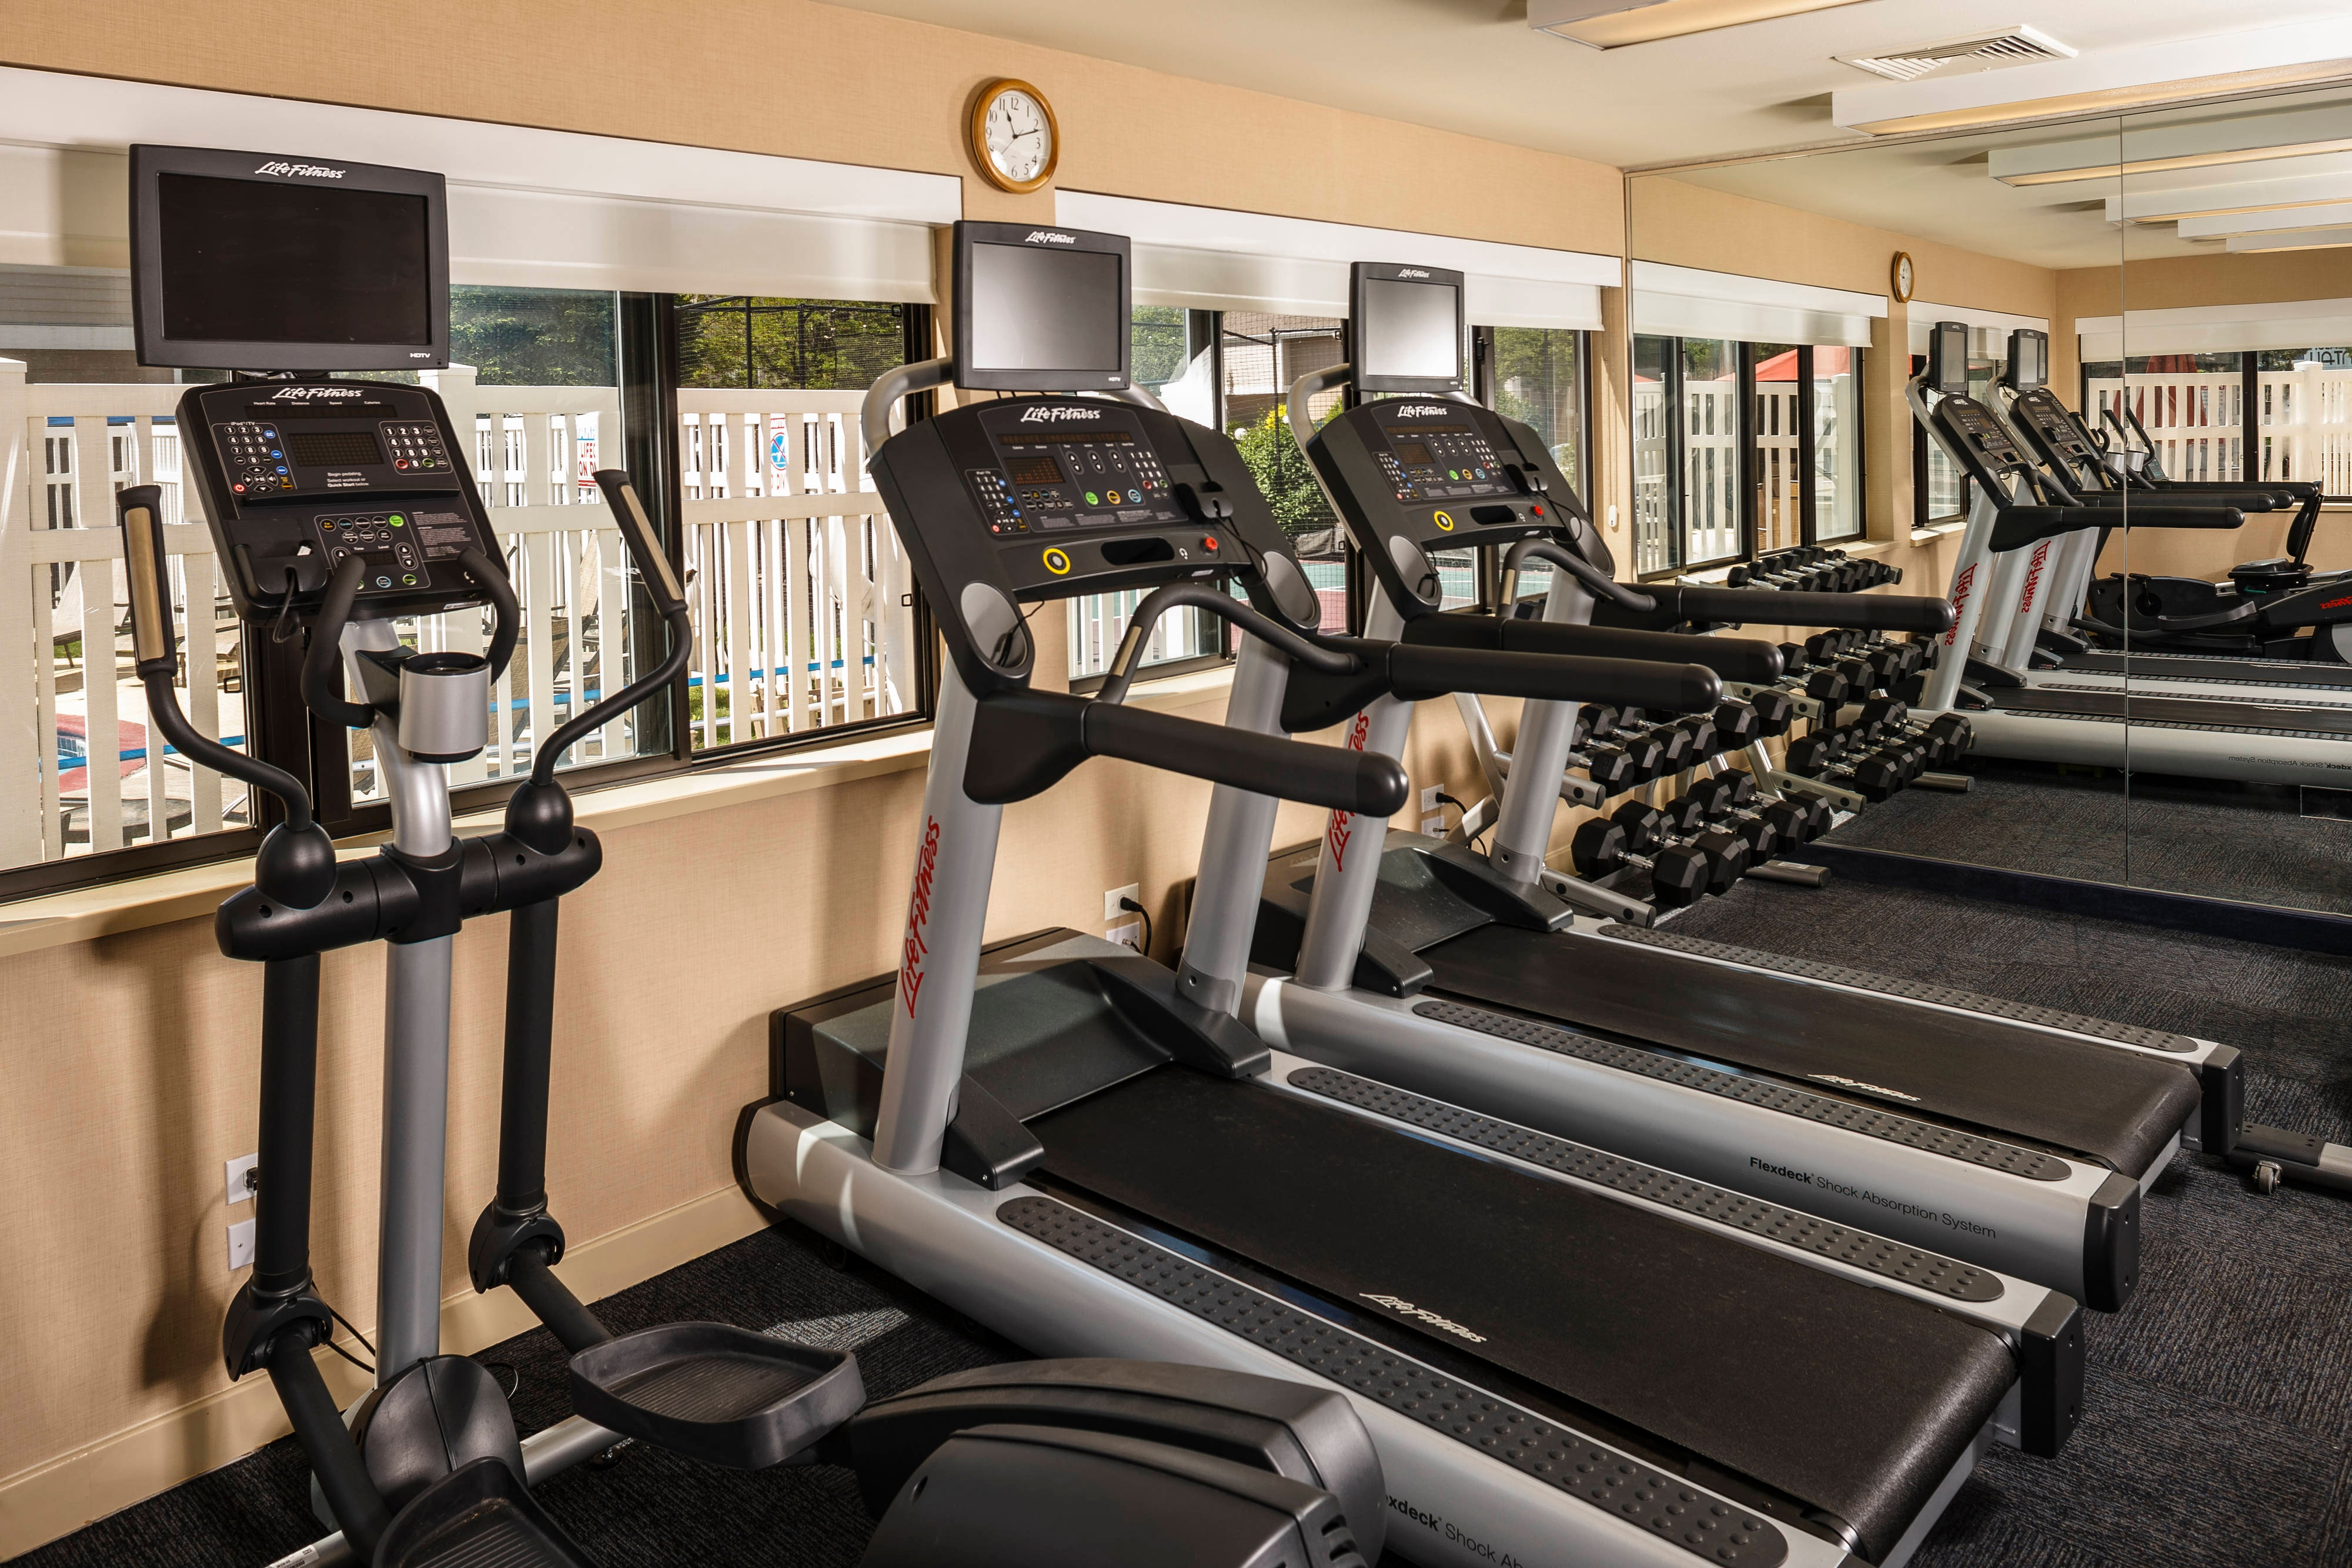 Residence Inn Fitness Center